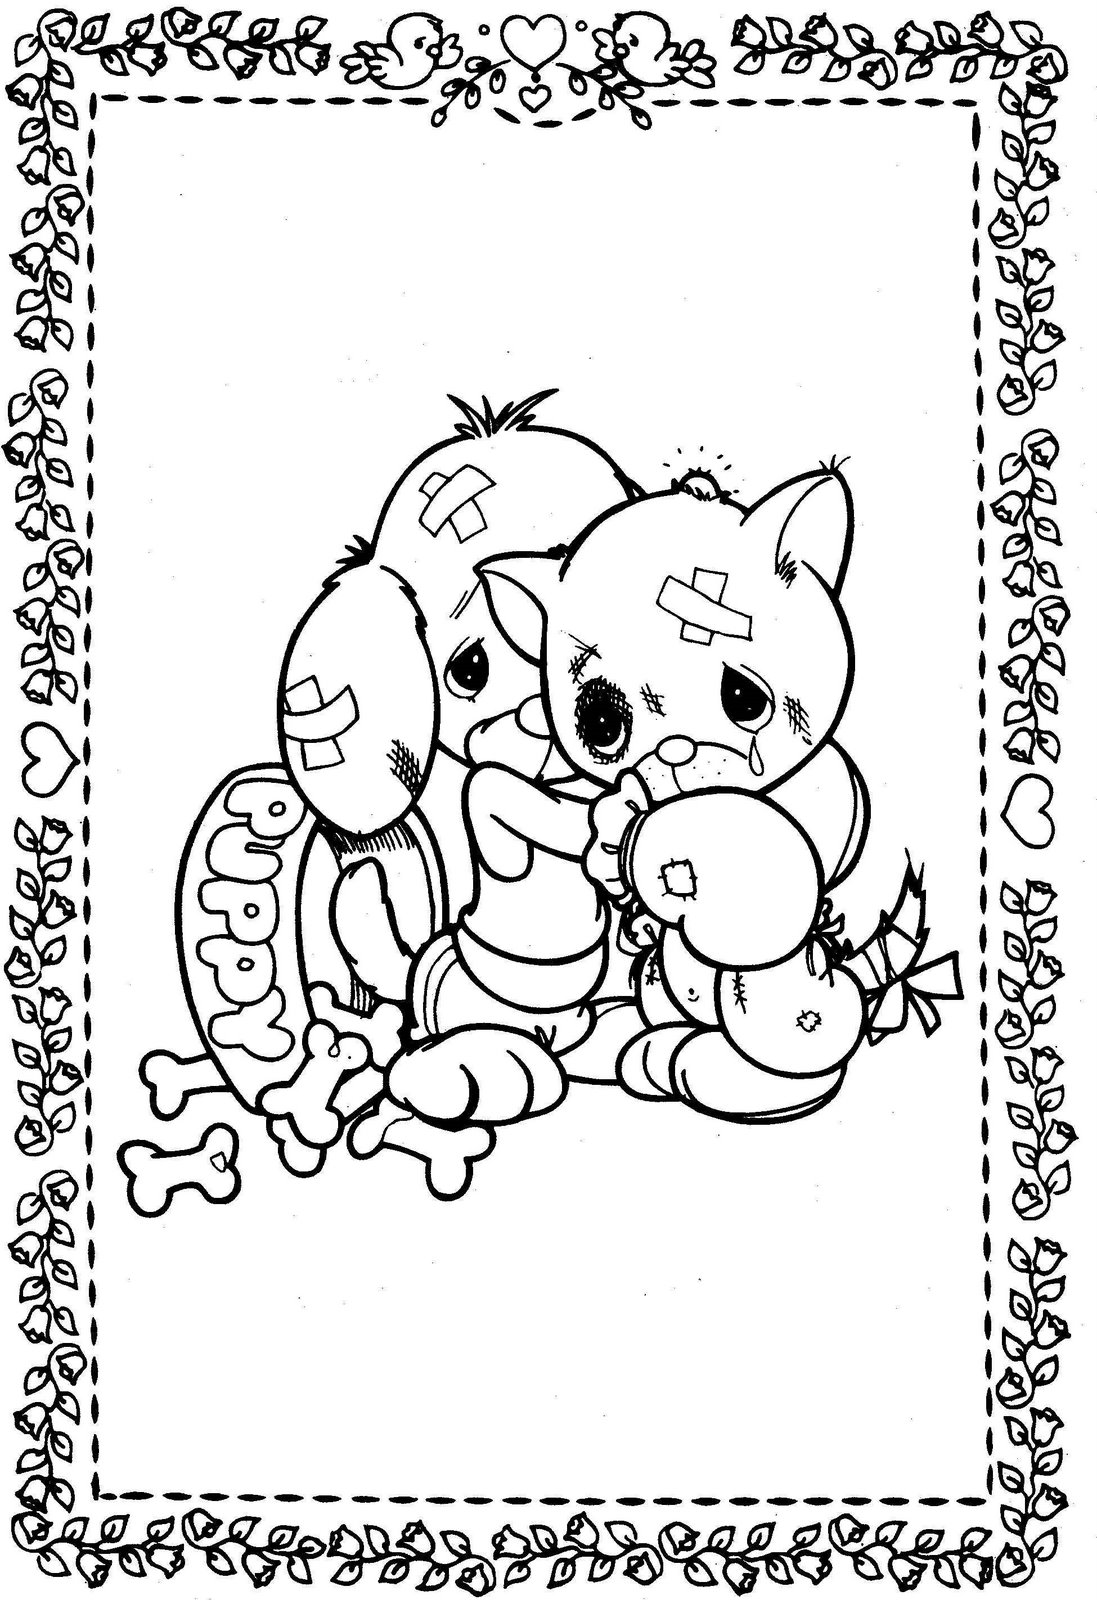 Precious Moments Drawings: kitty and puppy beaten to color